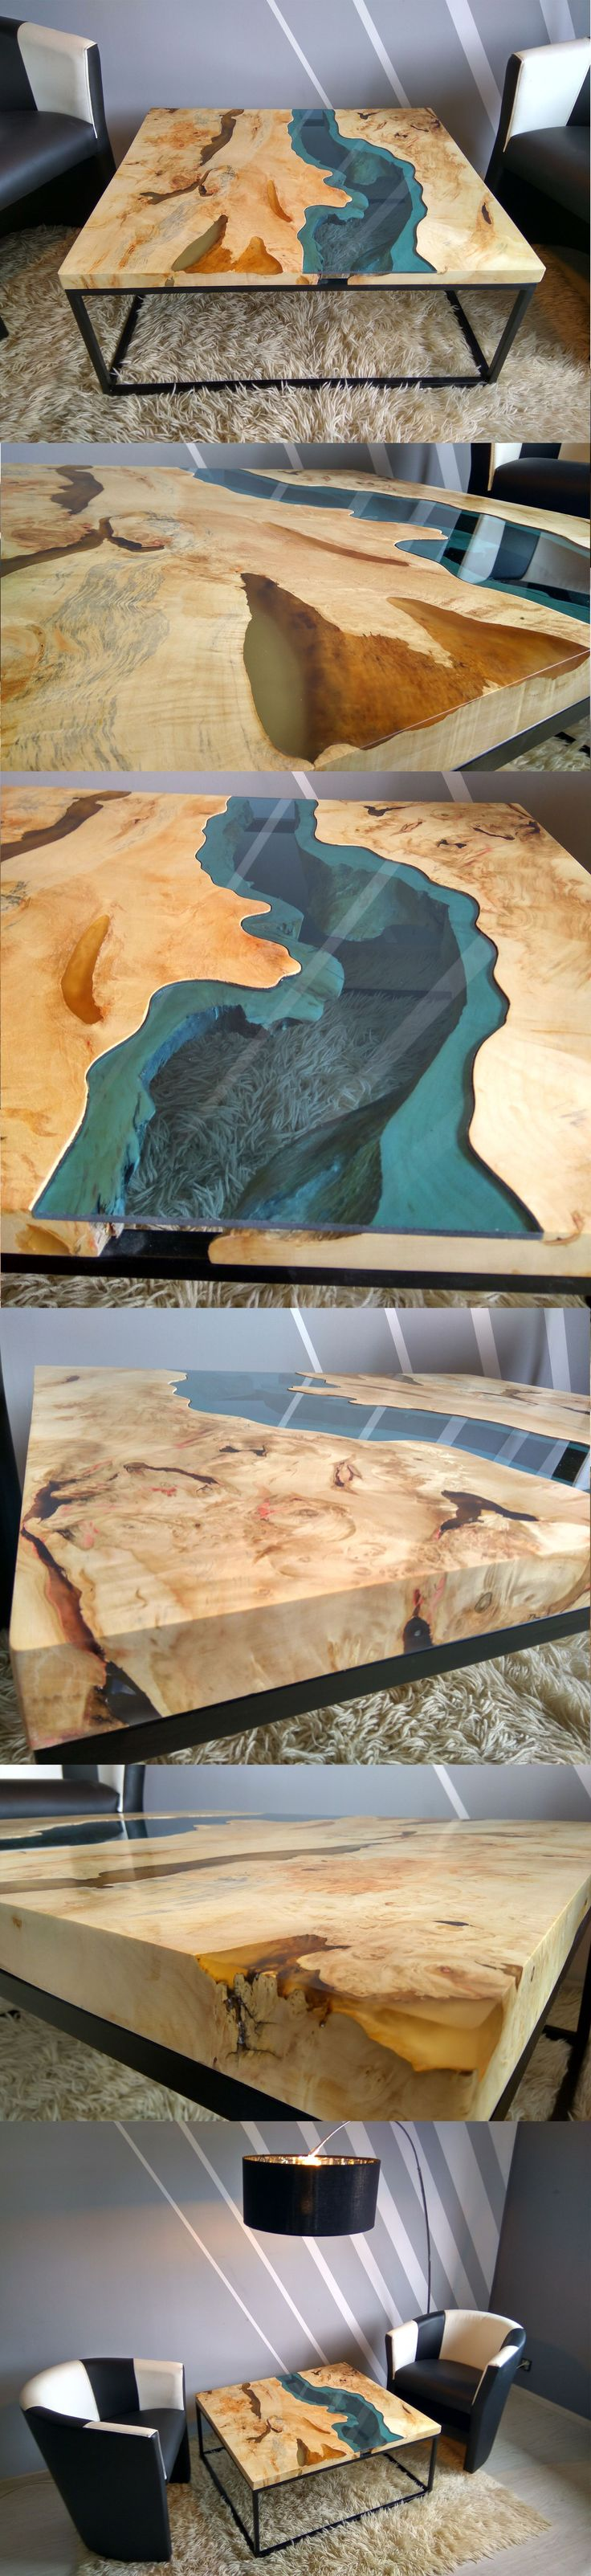 The 25+ Best Coffee Table Makeover Ideas On Pinterest | Coffee Table  Refinish, Refinished Coffee Tables And Old Coffee Tables